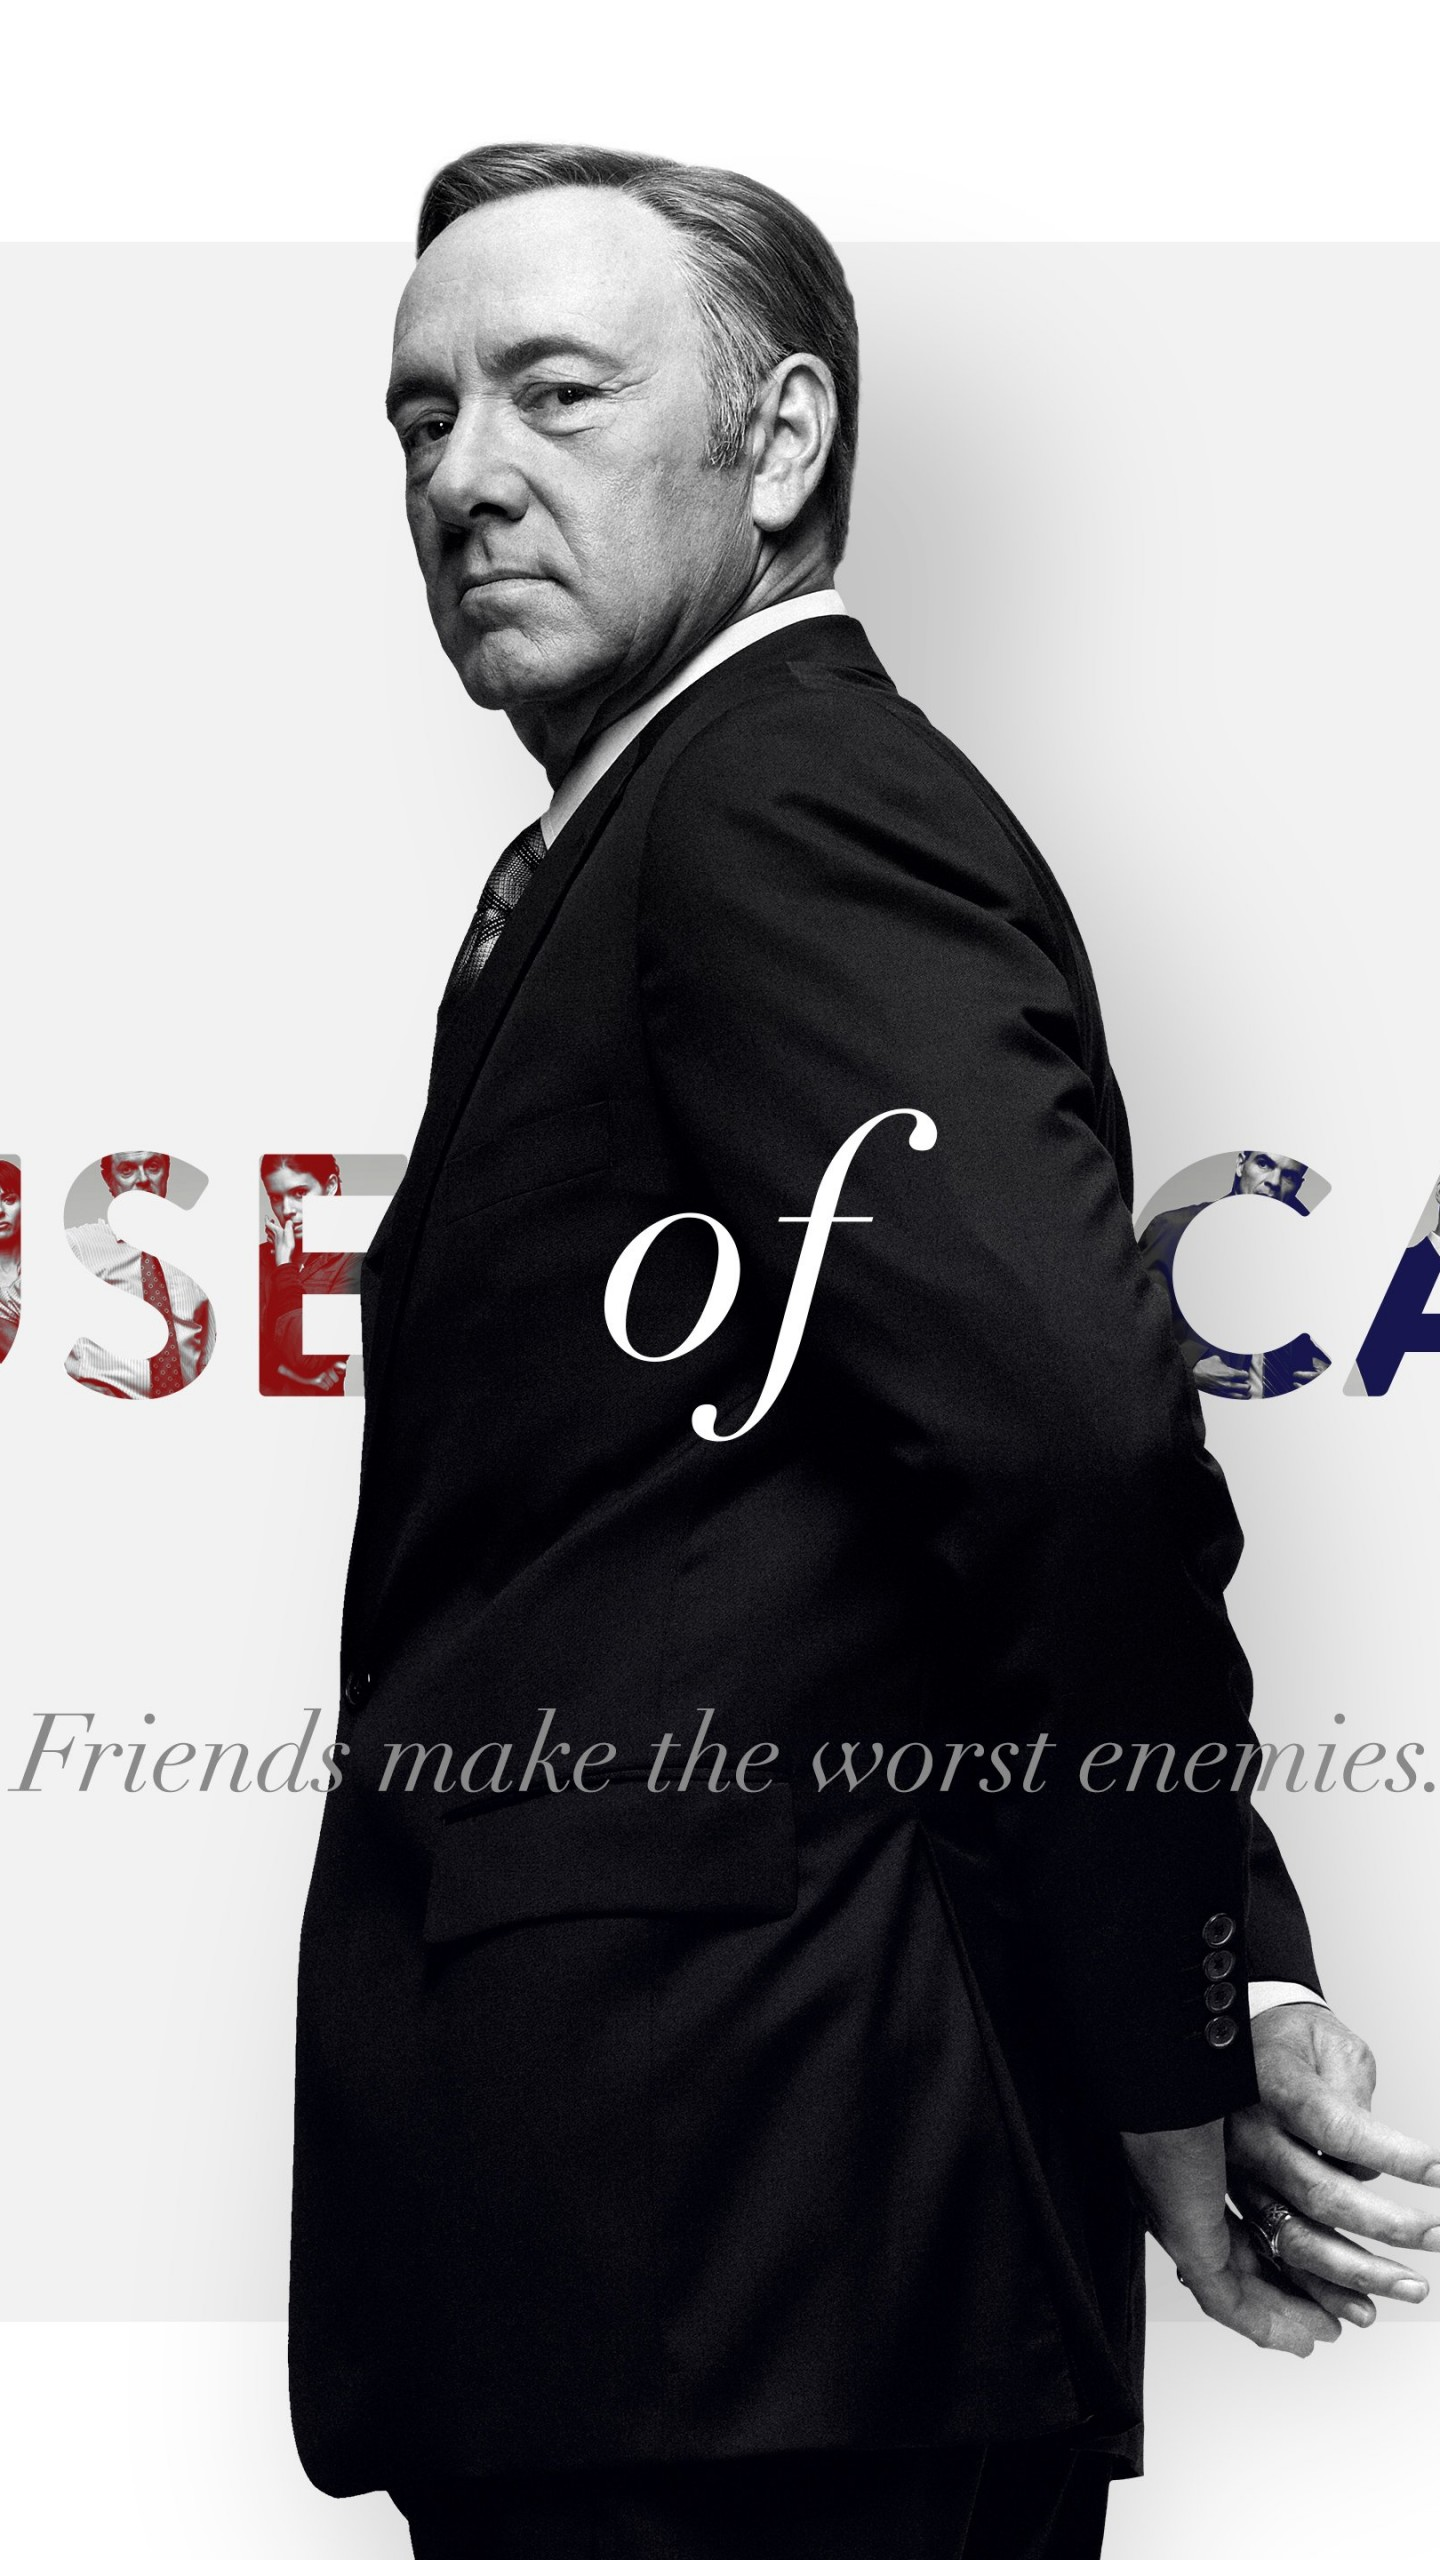 Frank Underwood - House of Cards Wallpaper for Google Nexus 6P